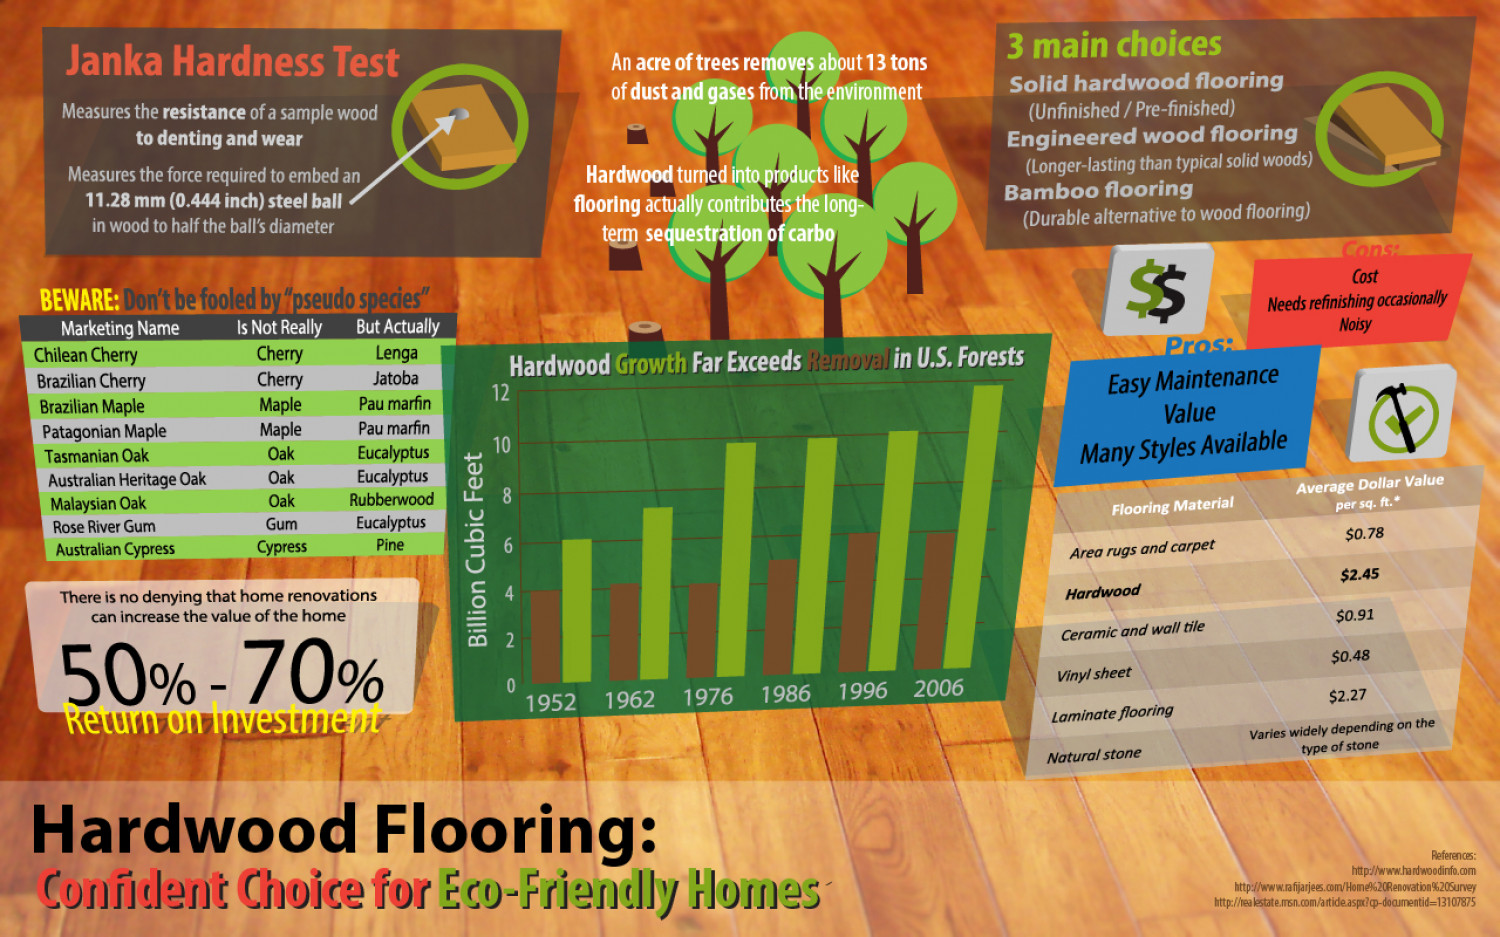 Hardwood Flooring: Confident Choice for Eco-Friendly Homes Infographic